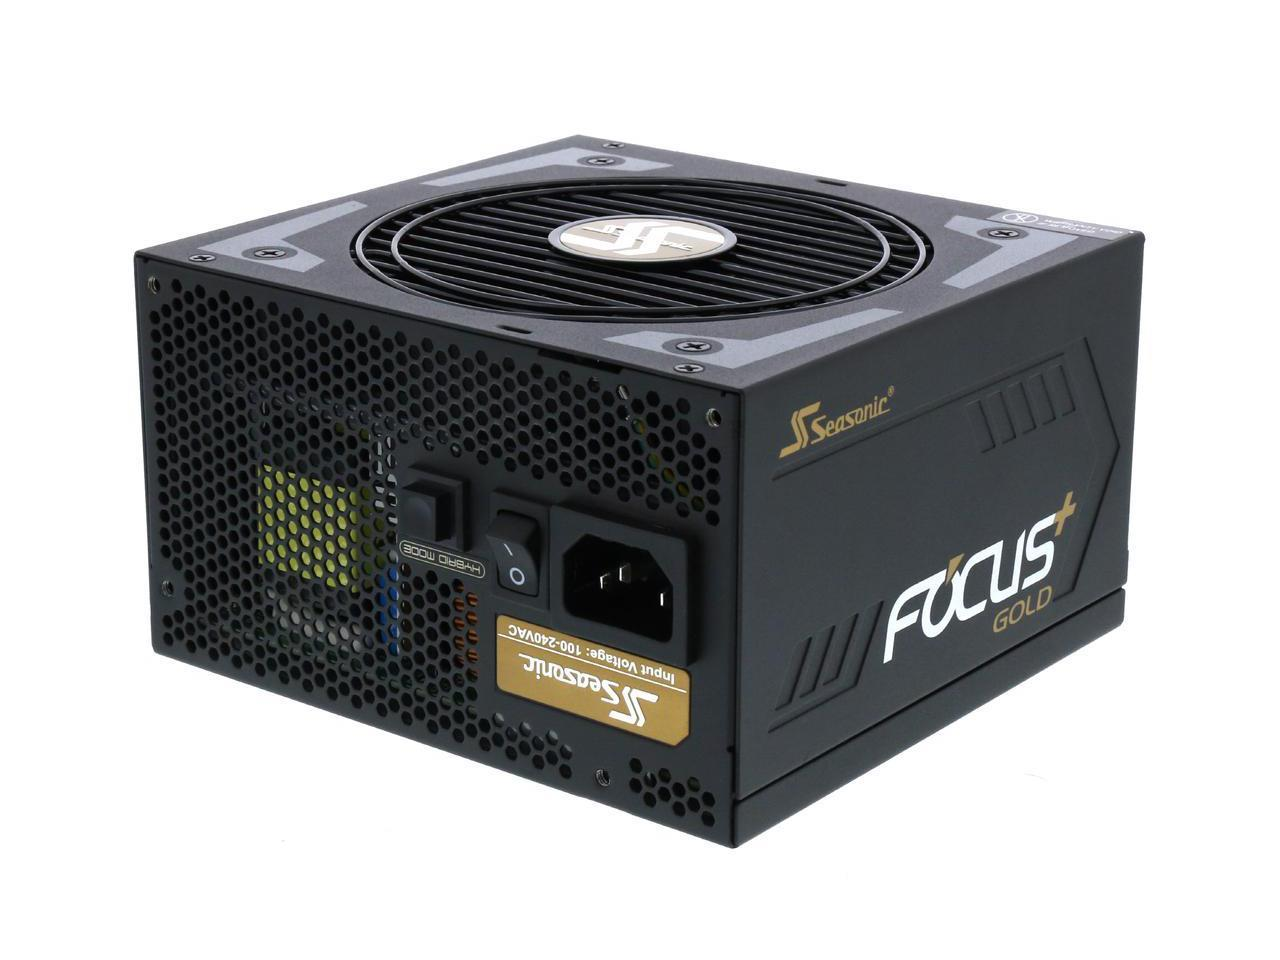 Streaming PC Guide